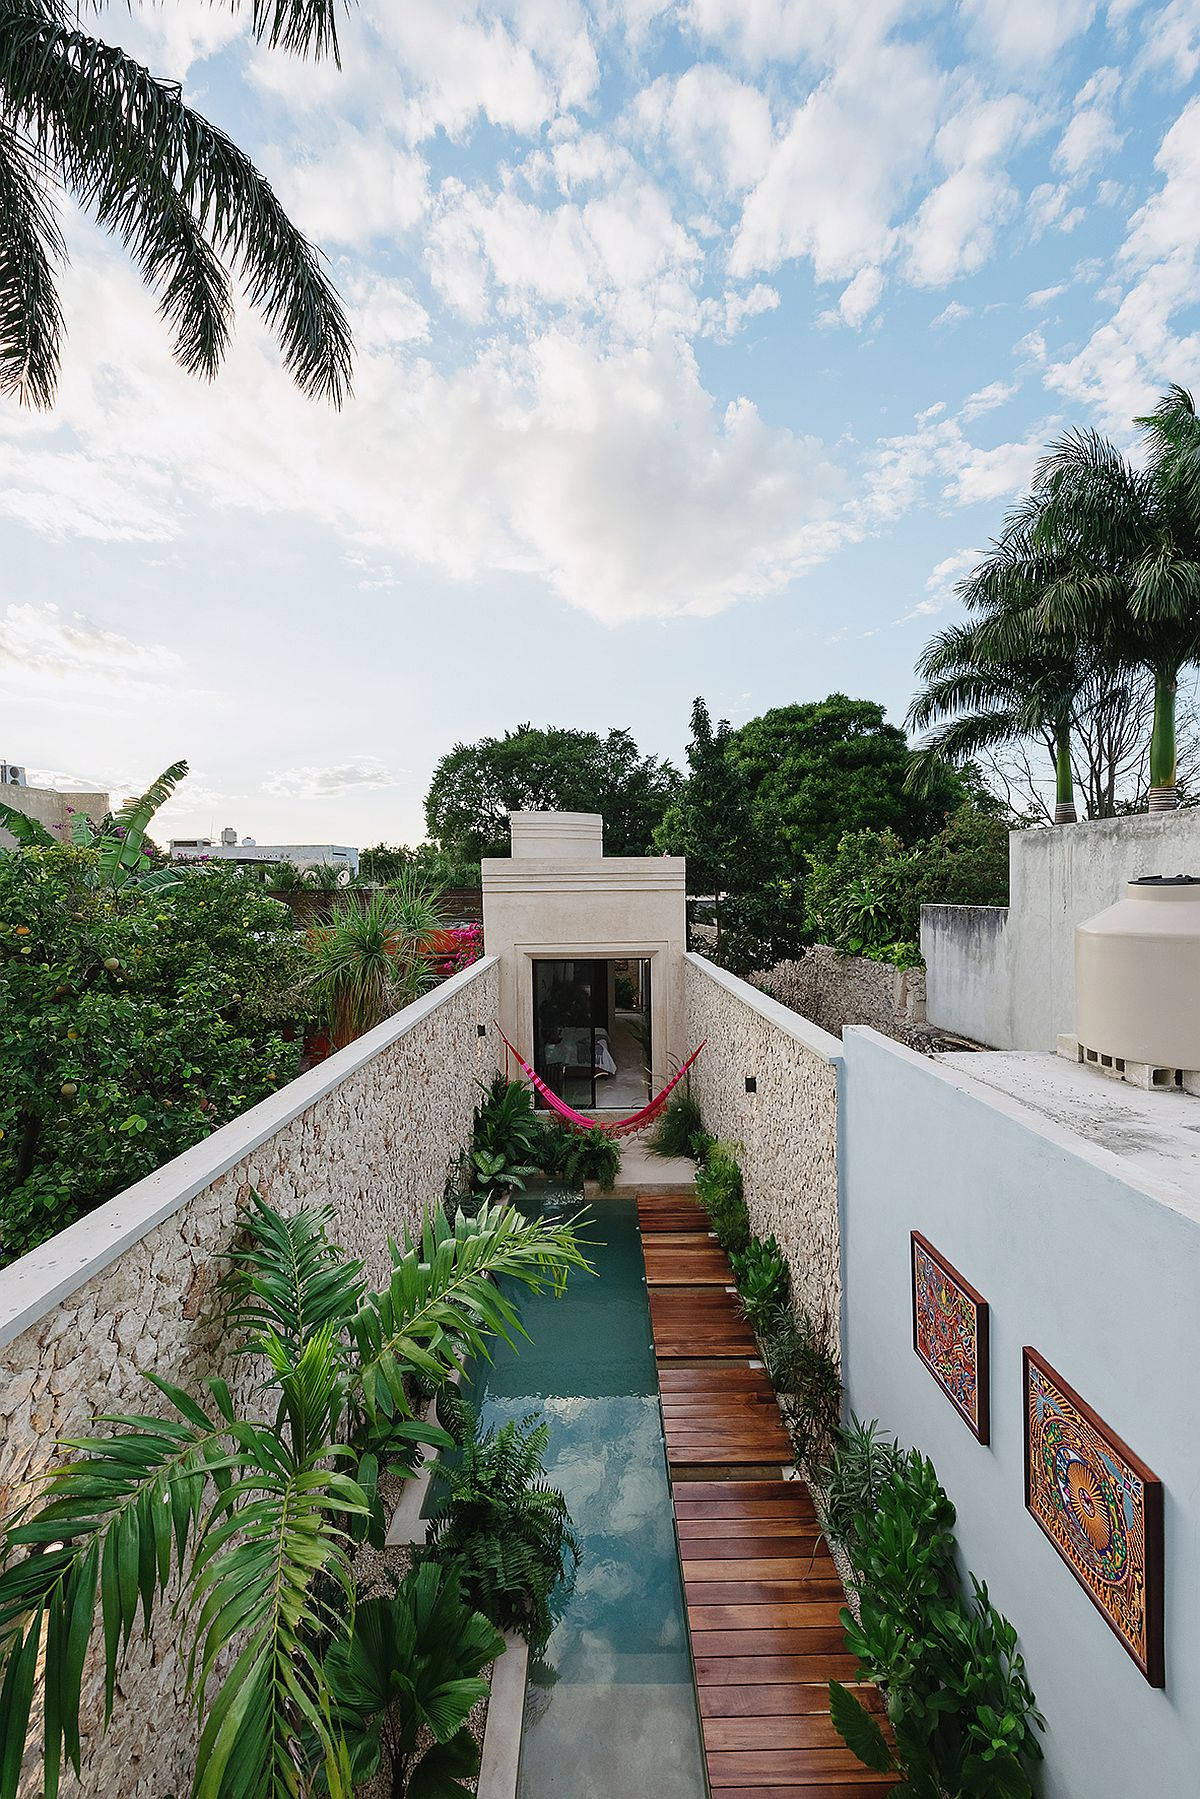 View-from-above-of-the-pool-area-and-the-narrow-house